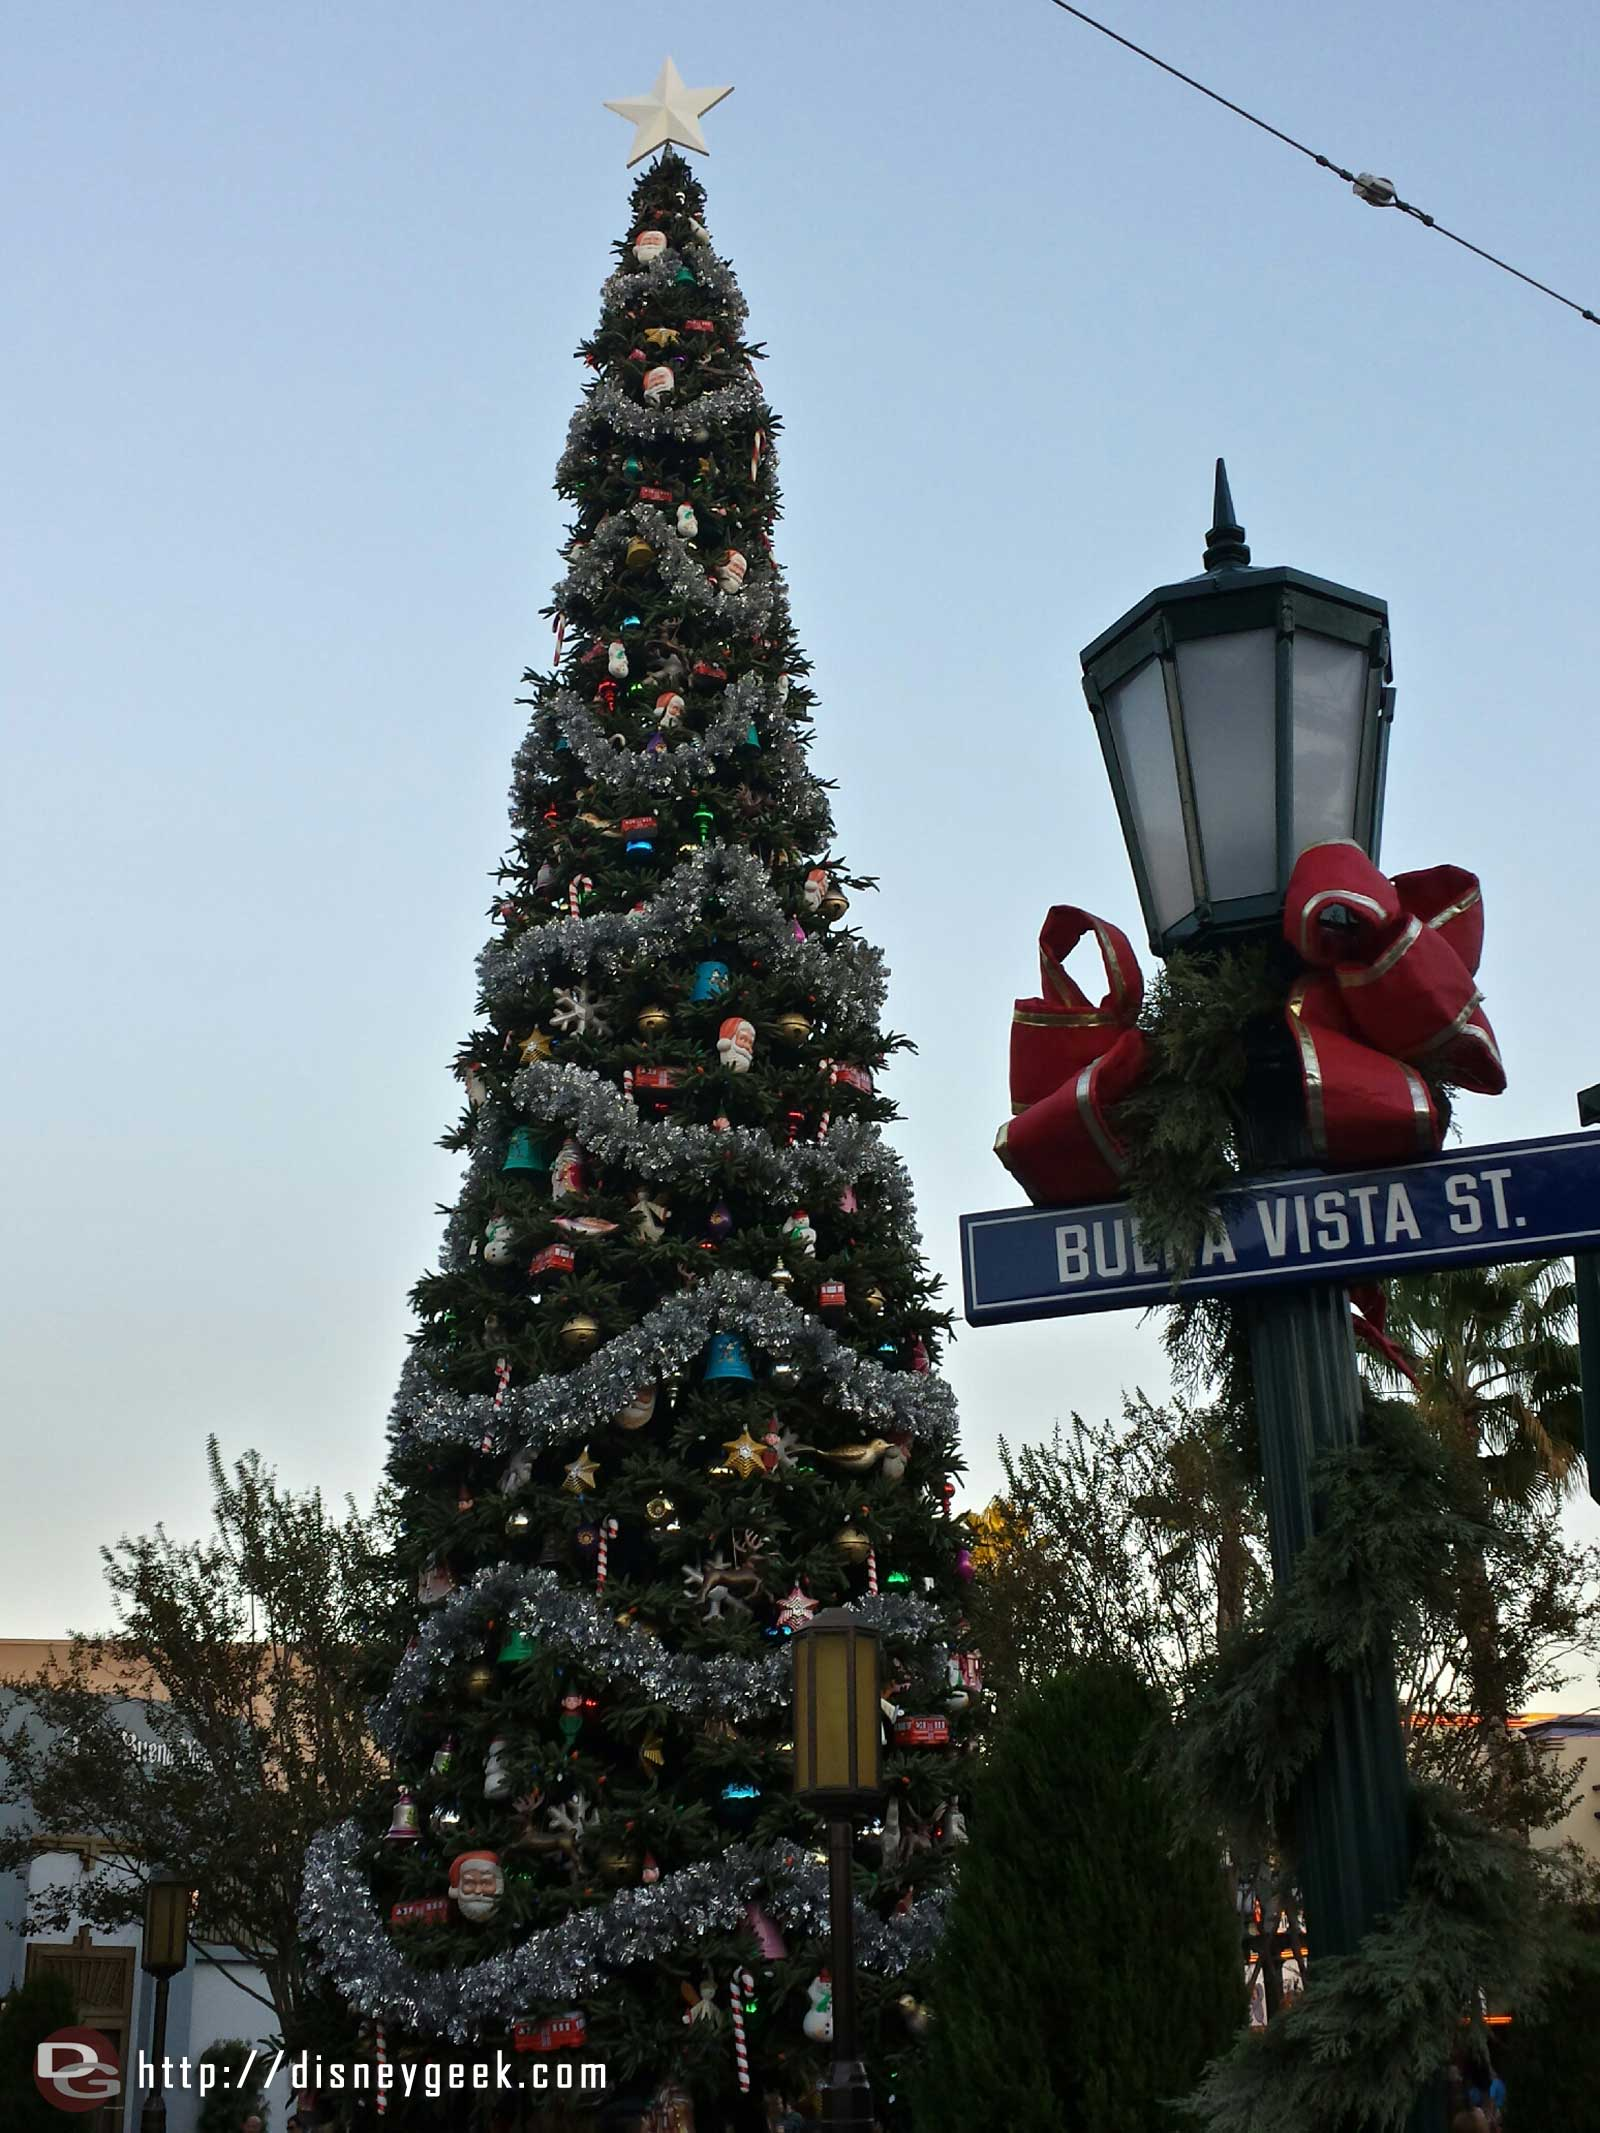 The Christmas tree on #BuenaVistaStreet